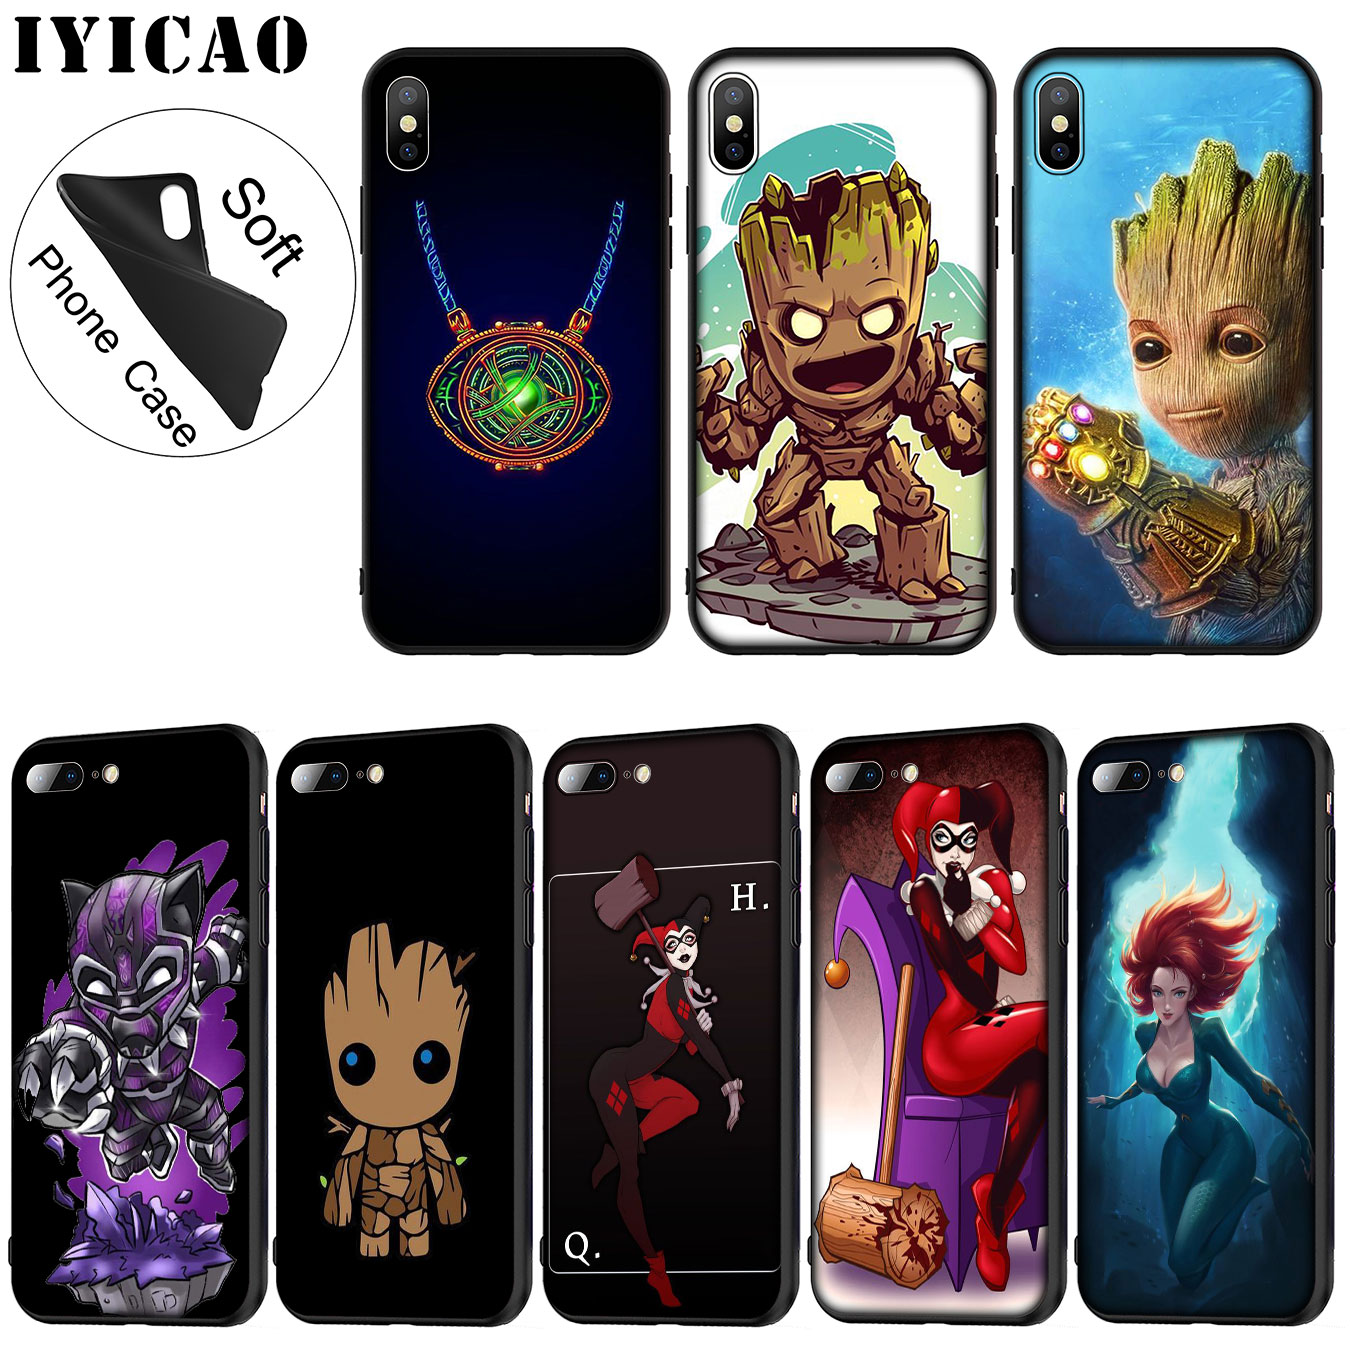 IYICAO Anime MARVEL The Avengers Soft Silicone Phone Case for iPhone XR X XS 11 Pro Max 6 6S 7 8 Plus 5 5S SE 10 TPU Black Cover